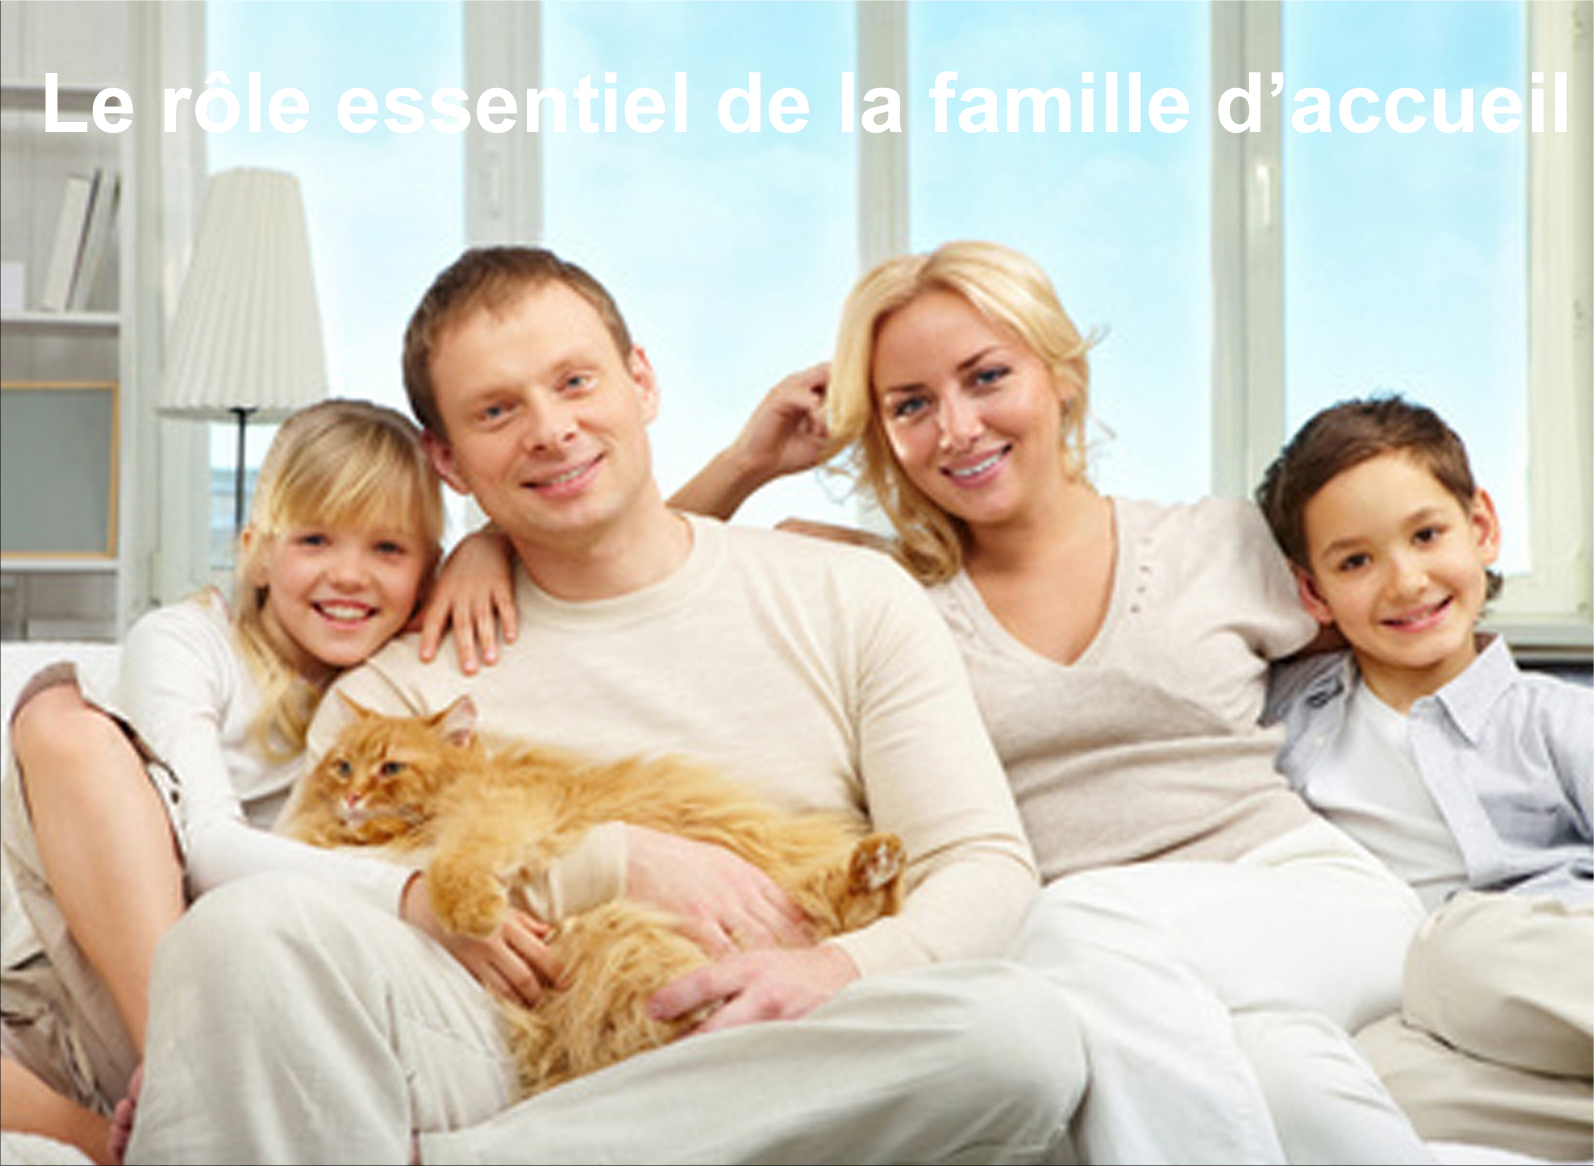 famille daccueil3